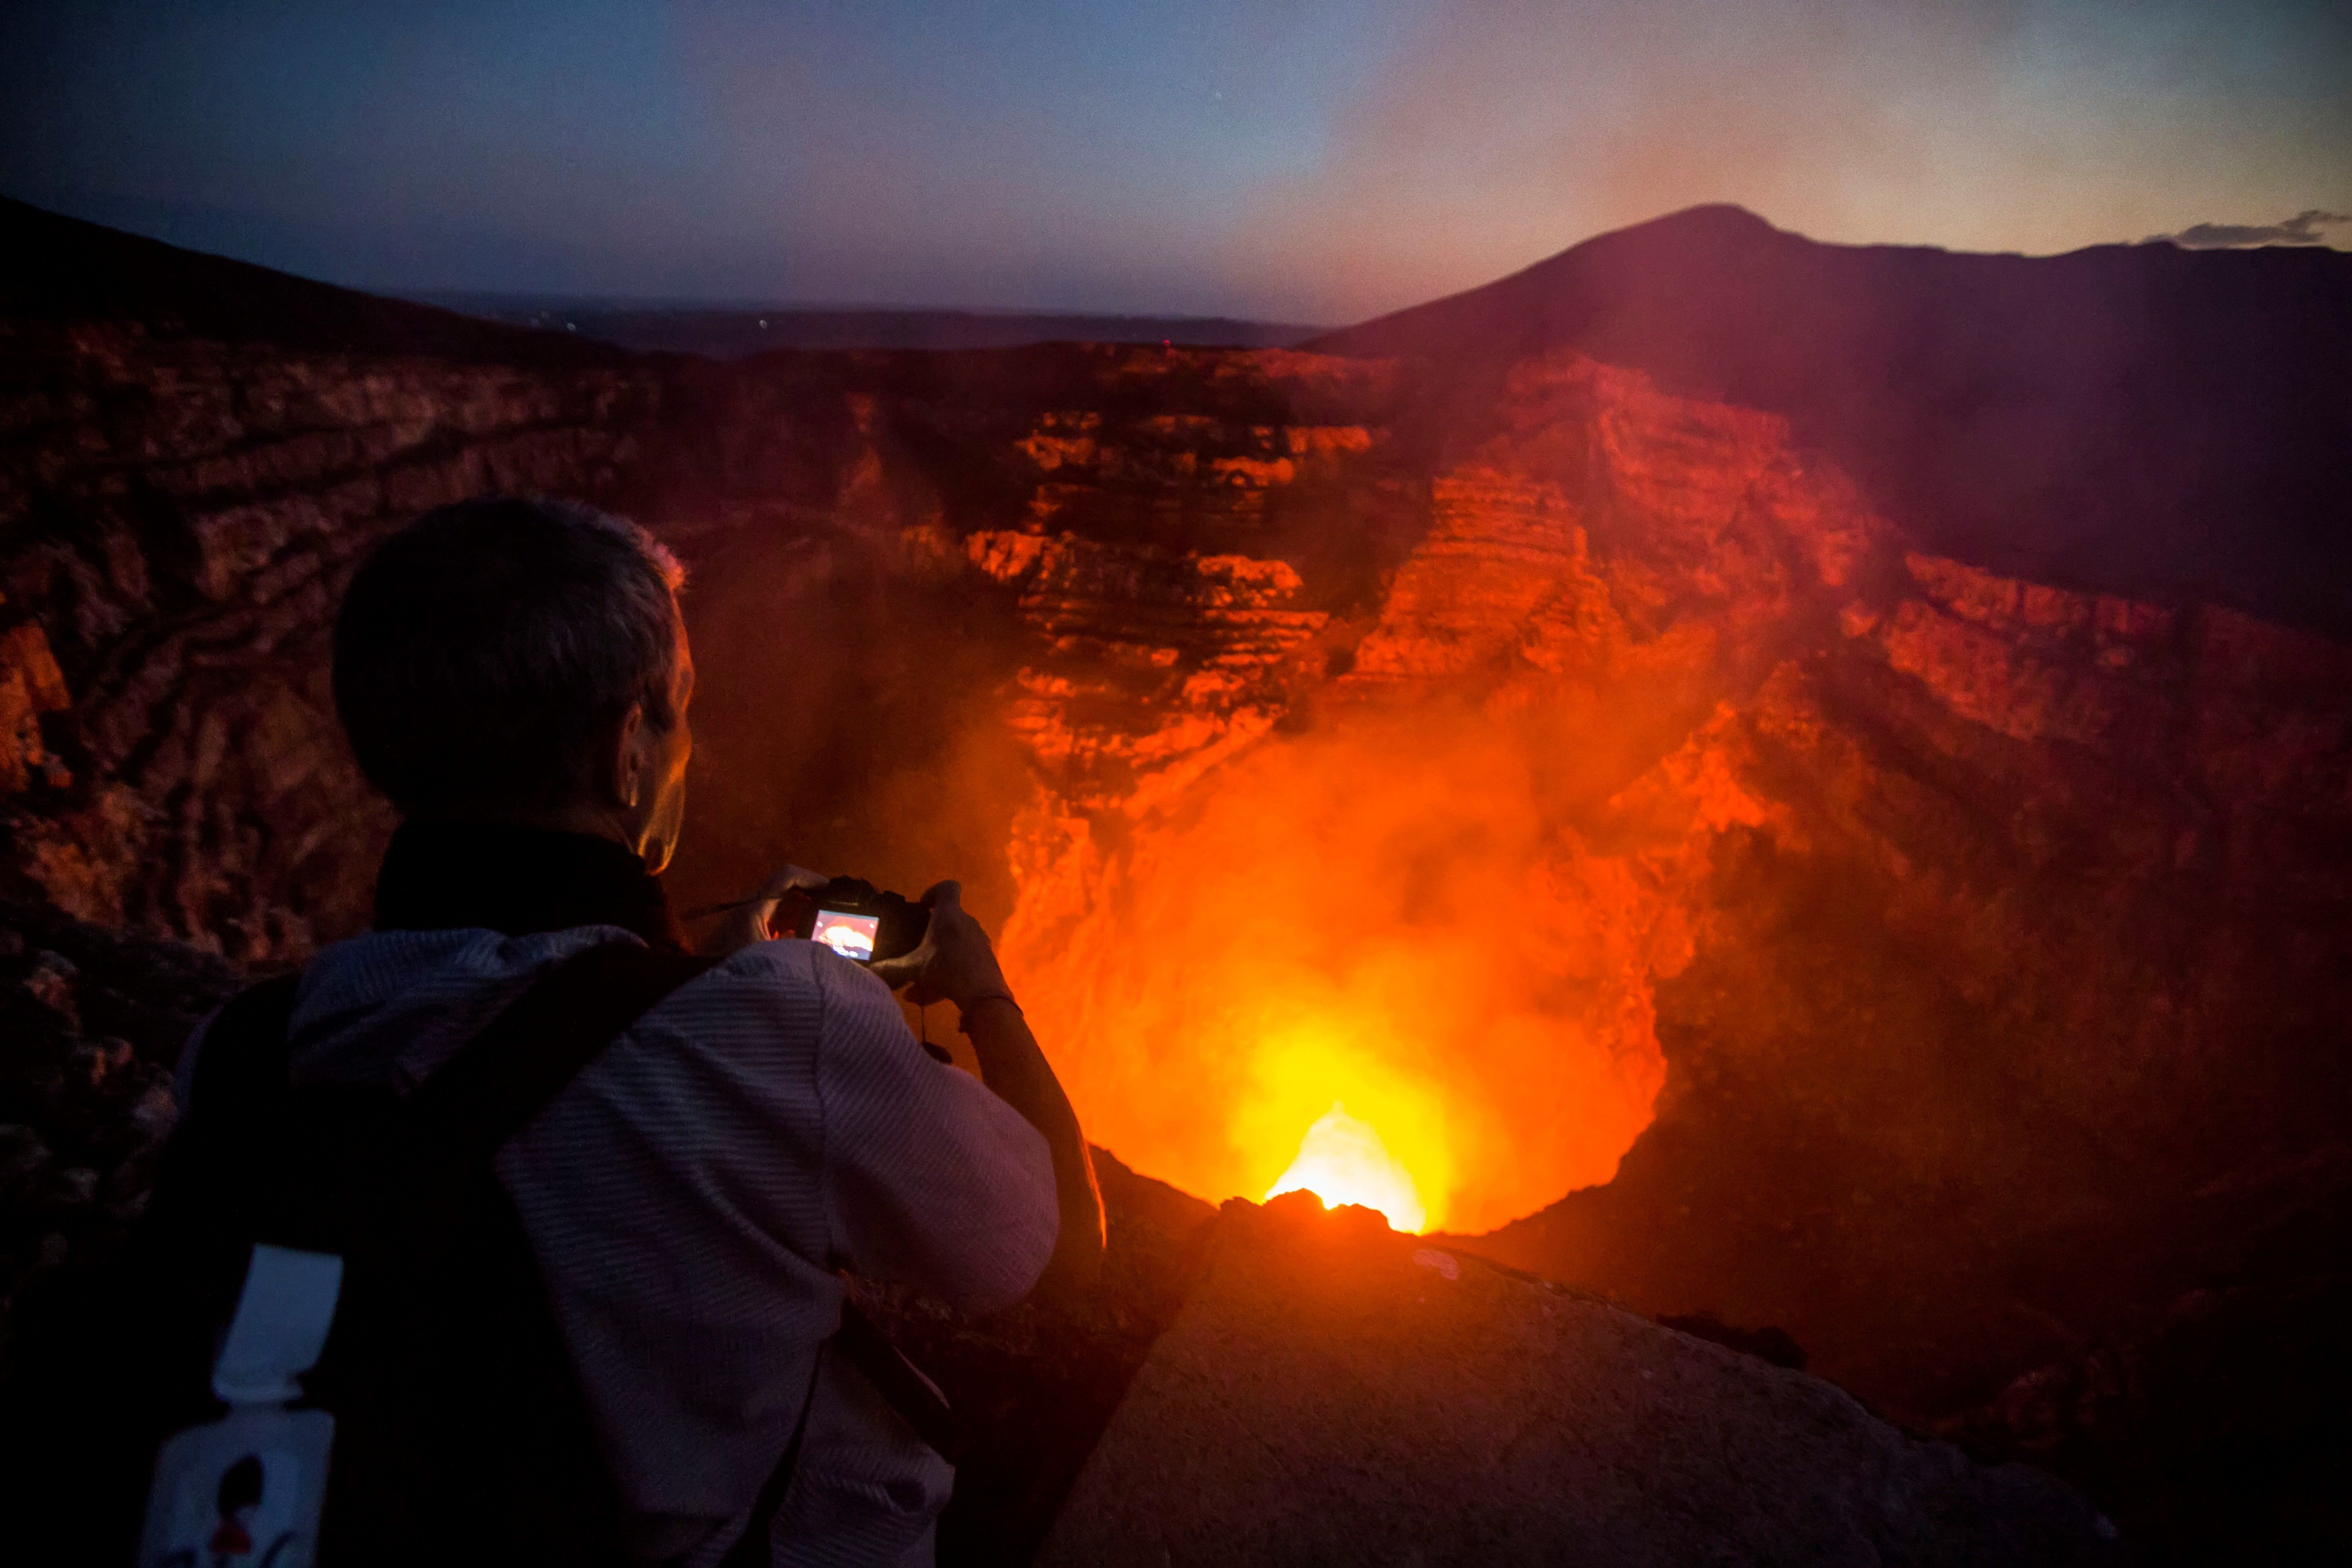 A tourist takes pictures of a lava lake inside the crater of the Masaya Volcano in Masaya, some 30km from Managua on May 19, 2016. Hundreds of tourists arrive daily to observe the lava flow which formed six months ago near the surface of the crater of the small Masaya volcano, one of the most active in Nicaragua.  / AFP / INTI OCON / TO GO WITH AFP STORY BY BLANCA MOREL        (Photo credit should read INTI OCON/AFP/Getty Images)